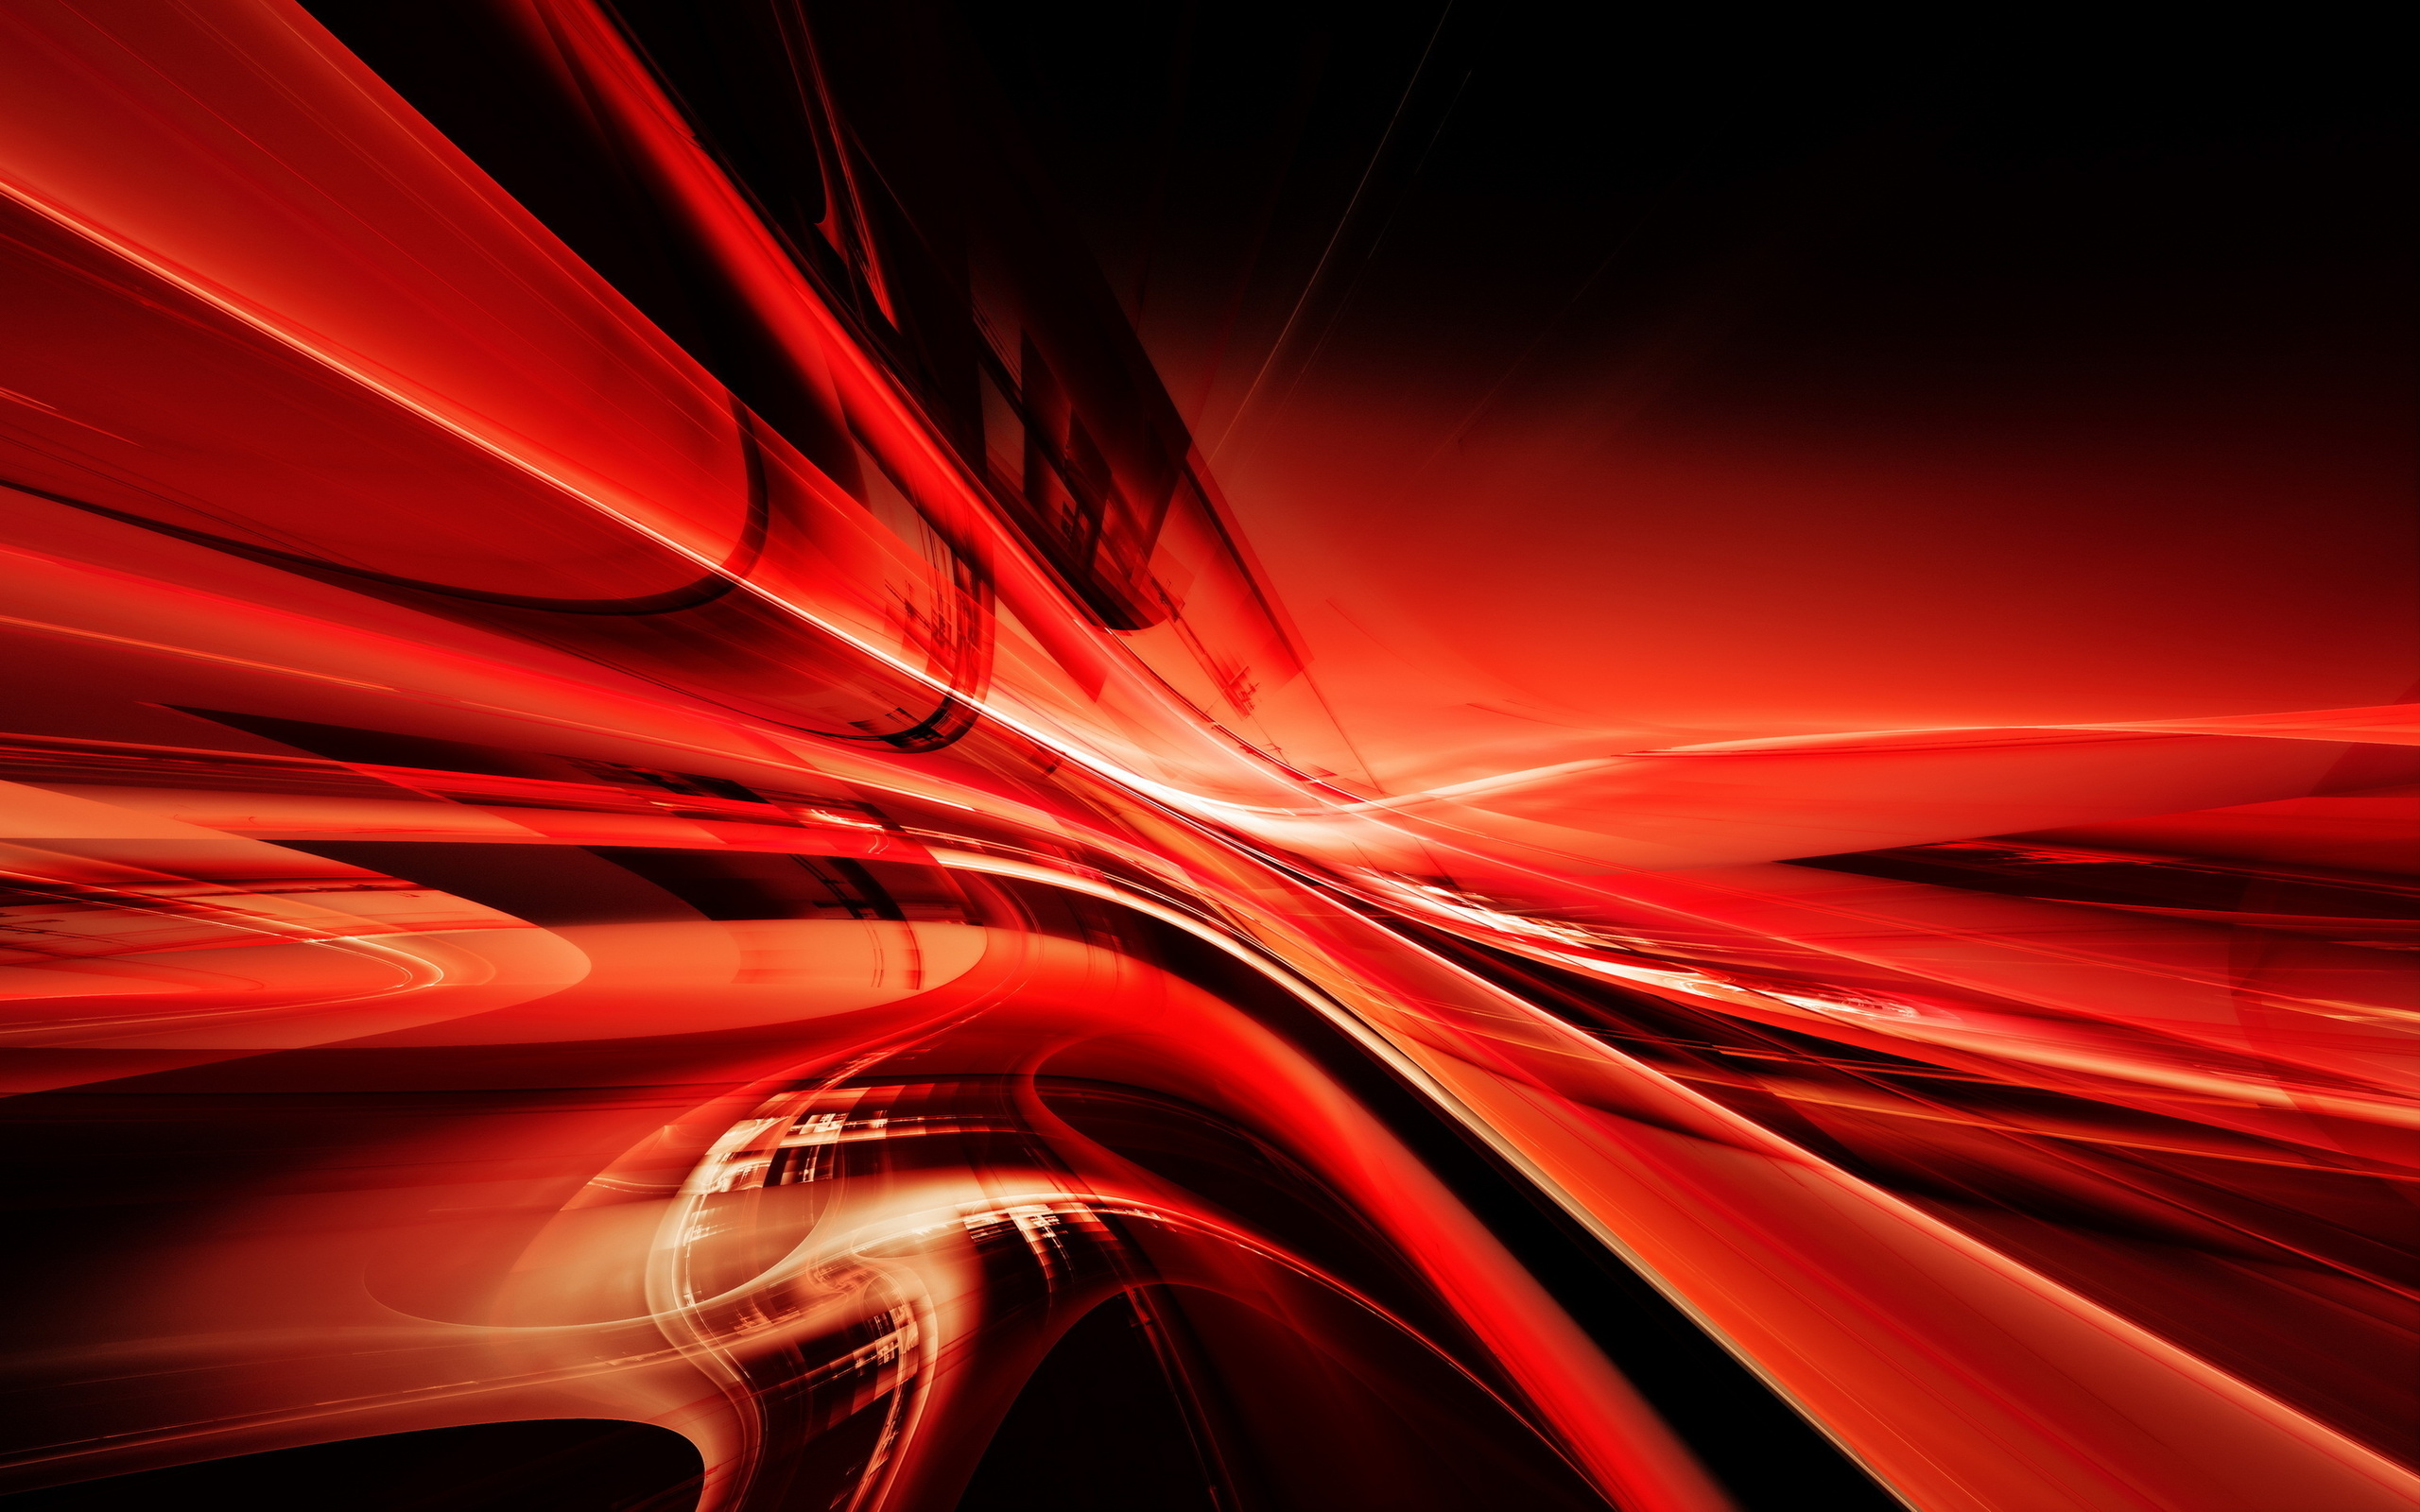 Fantastic Wallpaper Name Samsung - abstract-3d-wallpaper  You Should Have_845069.jpg